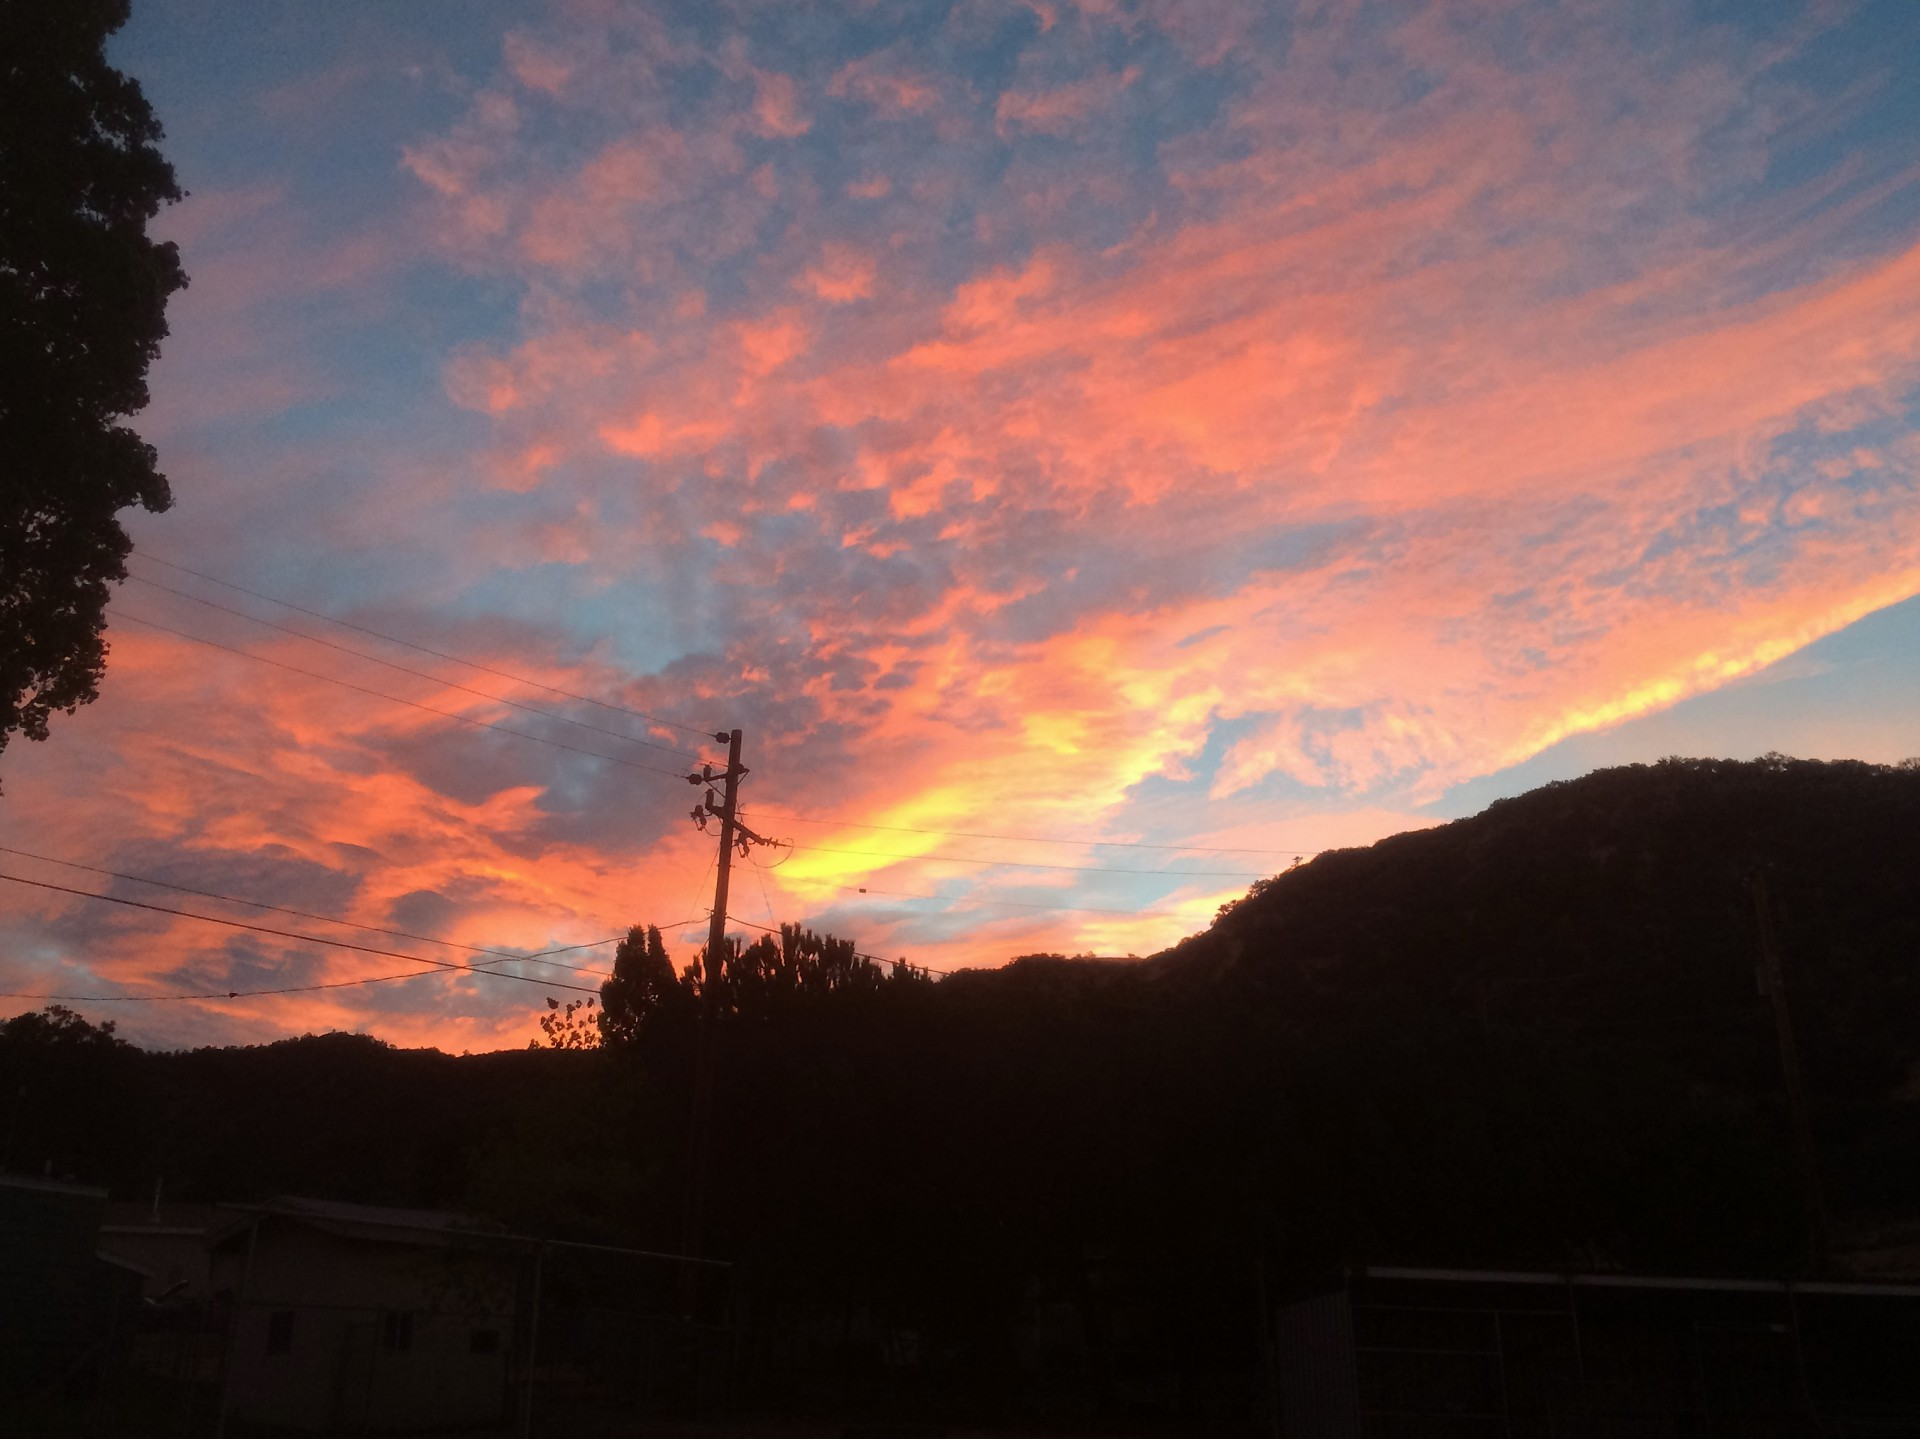 Sunset in Lebec